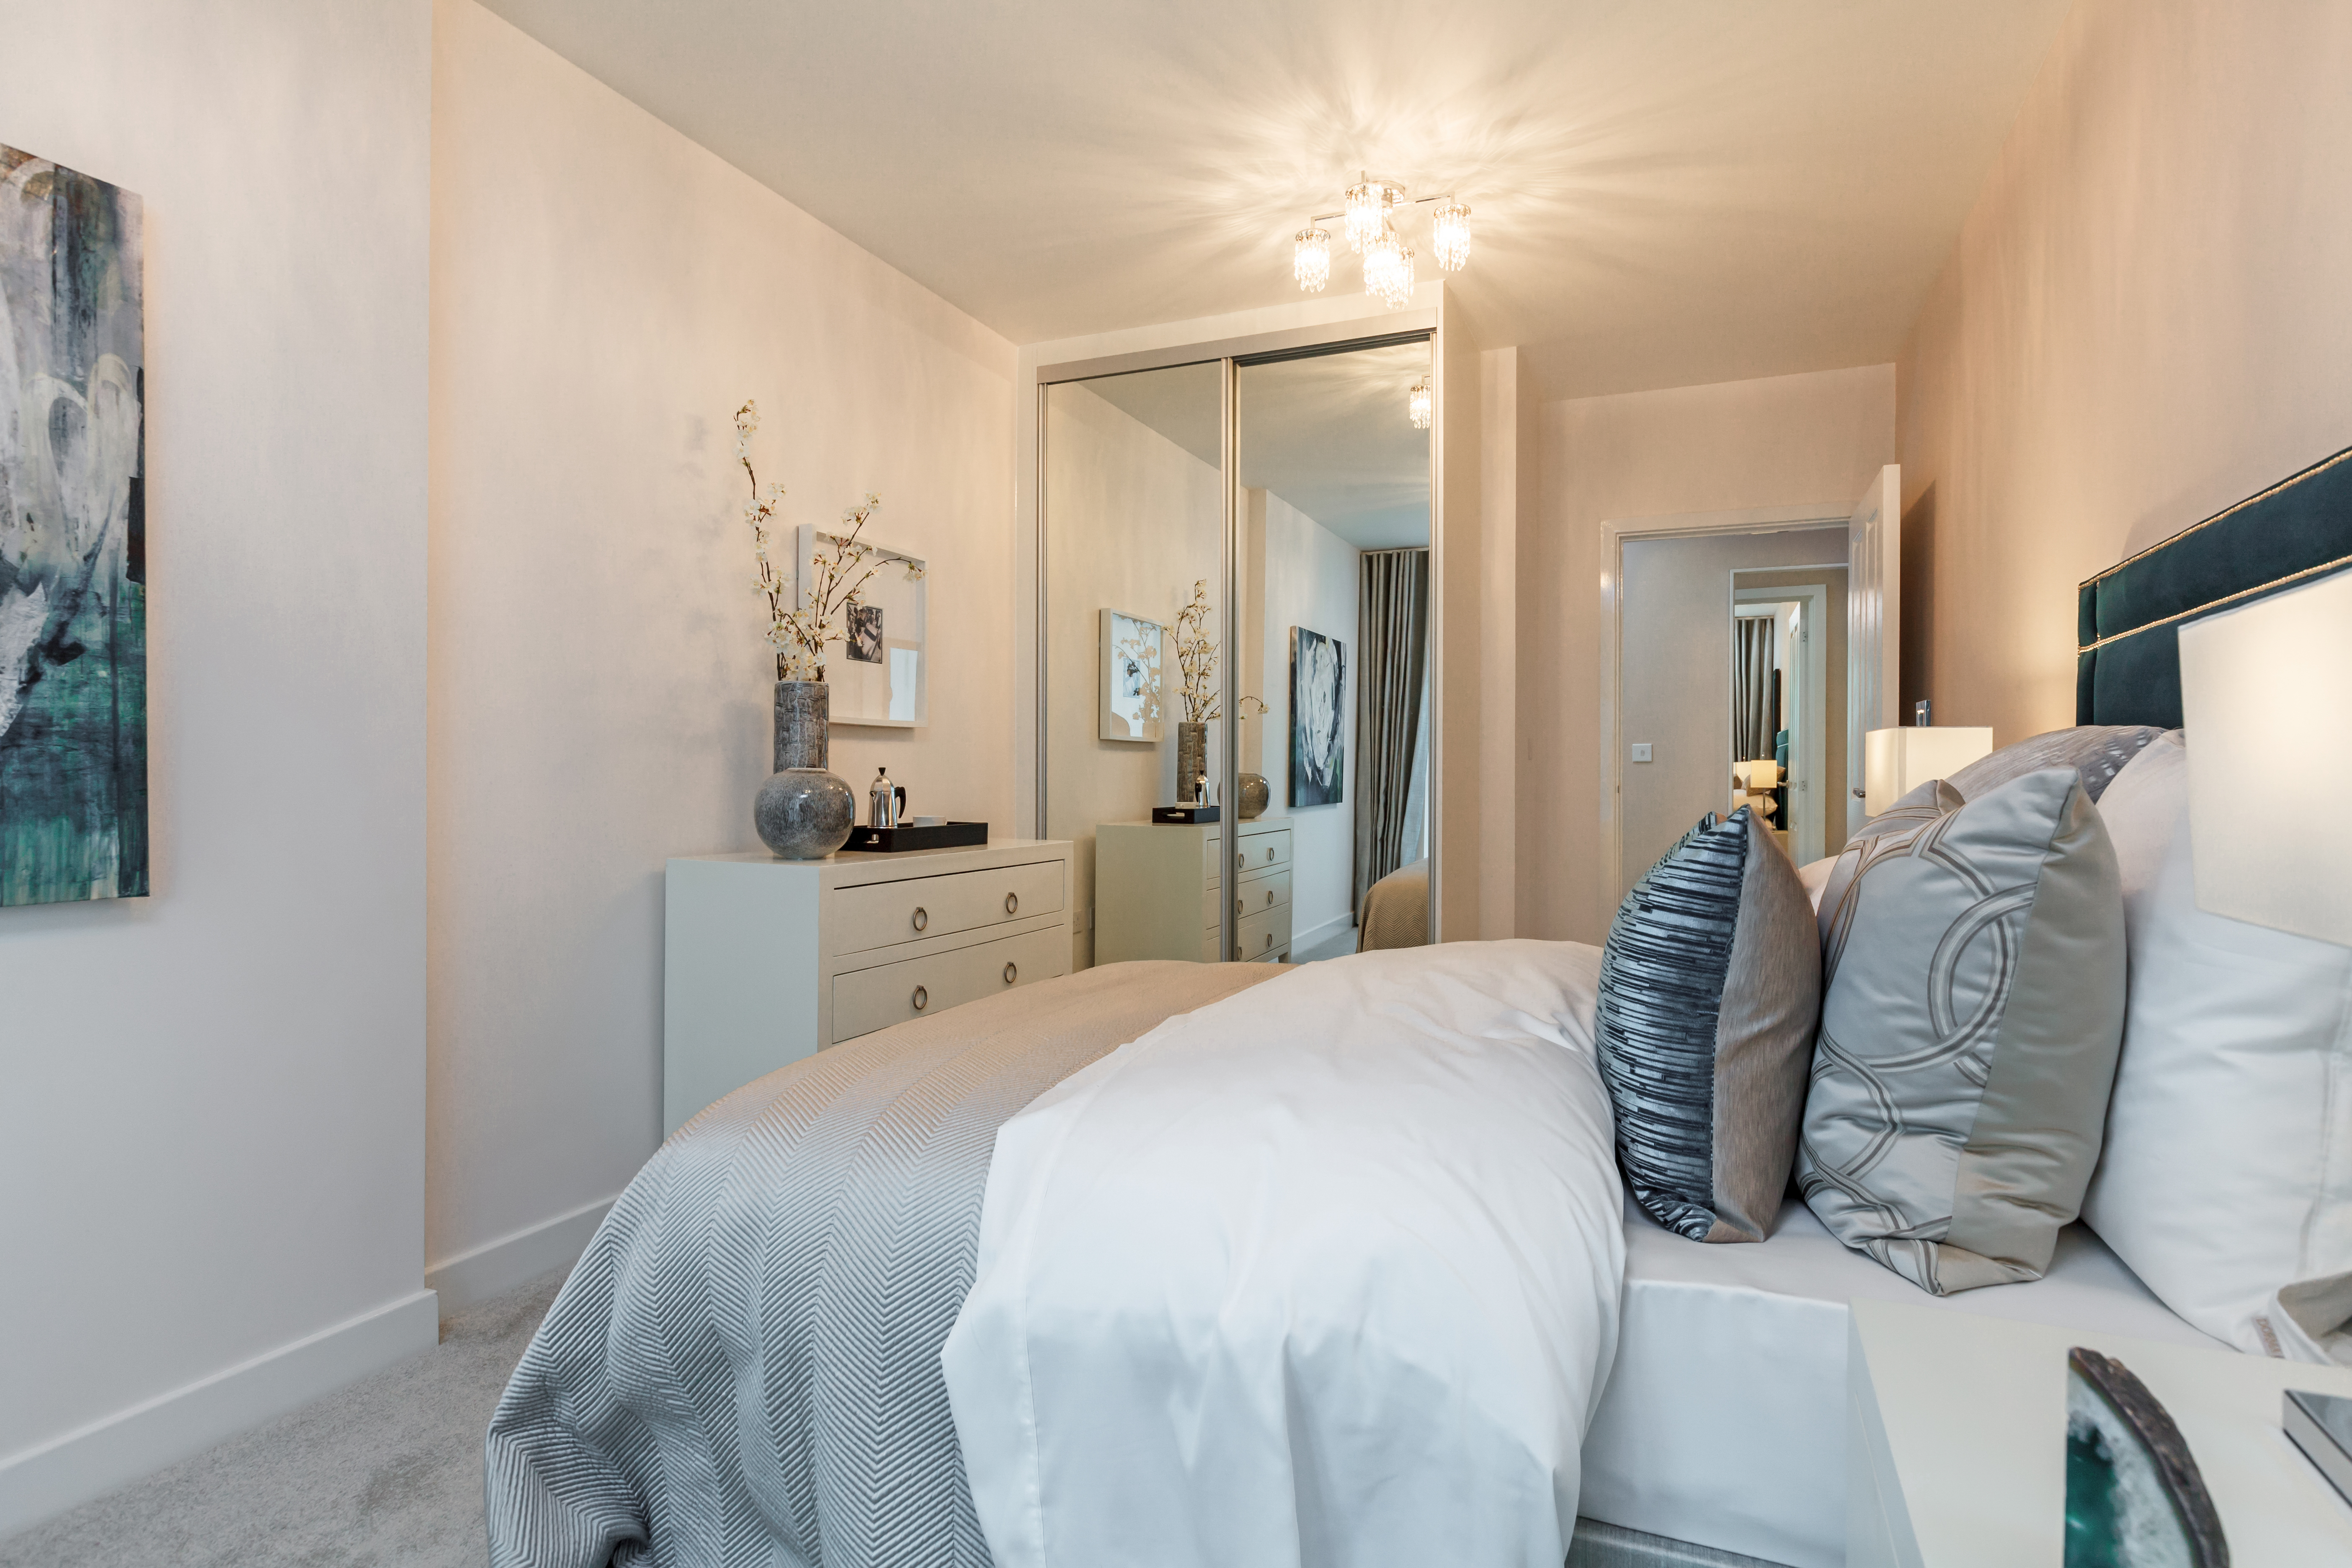 TW_NT_Millbrook Park_2 Bed Apartment_Bedroom_2_2